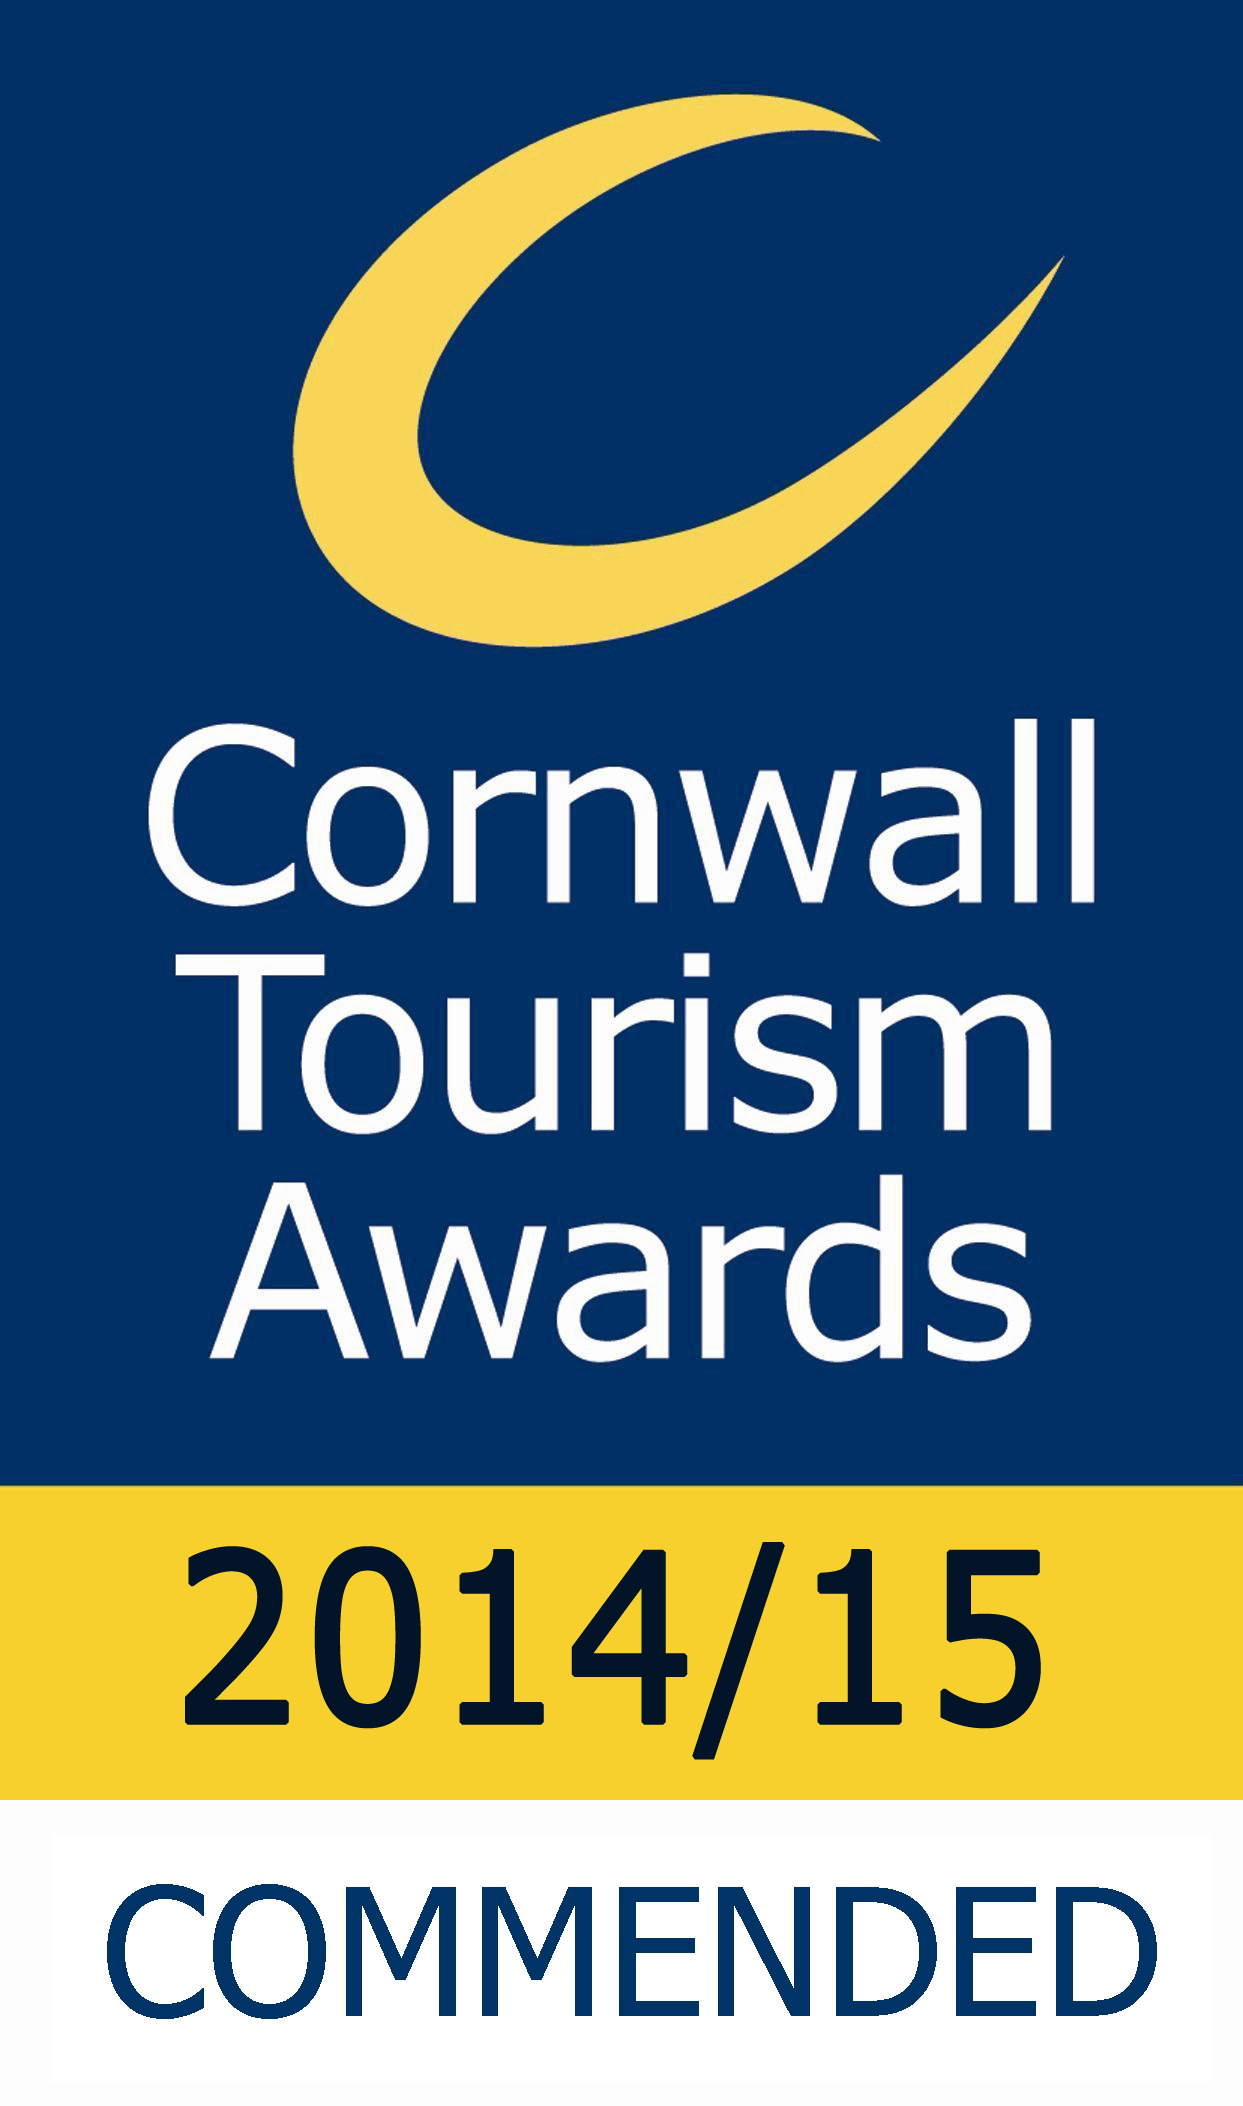 Koru Commended in Cornwall Tourism Awards 2014/15